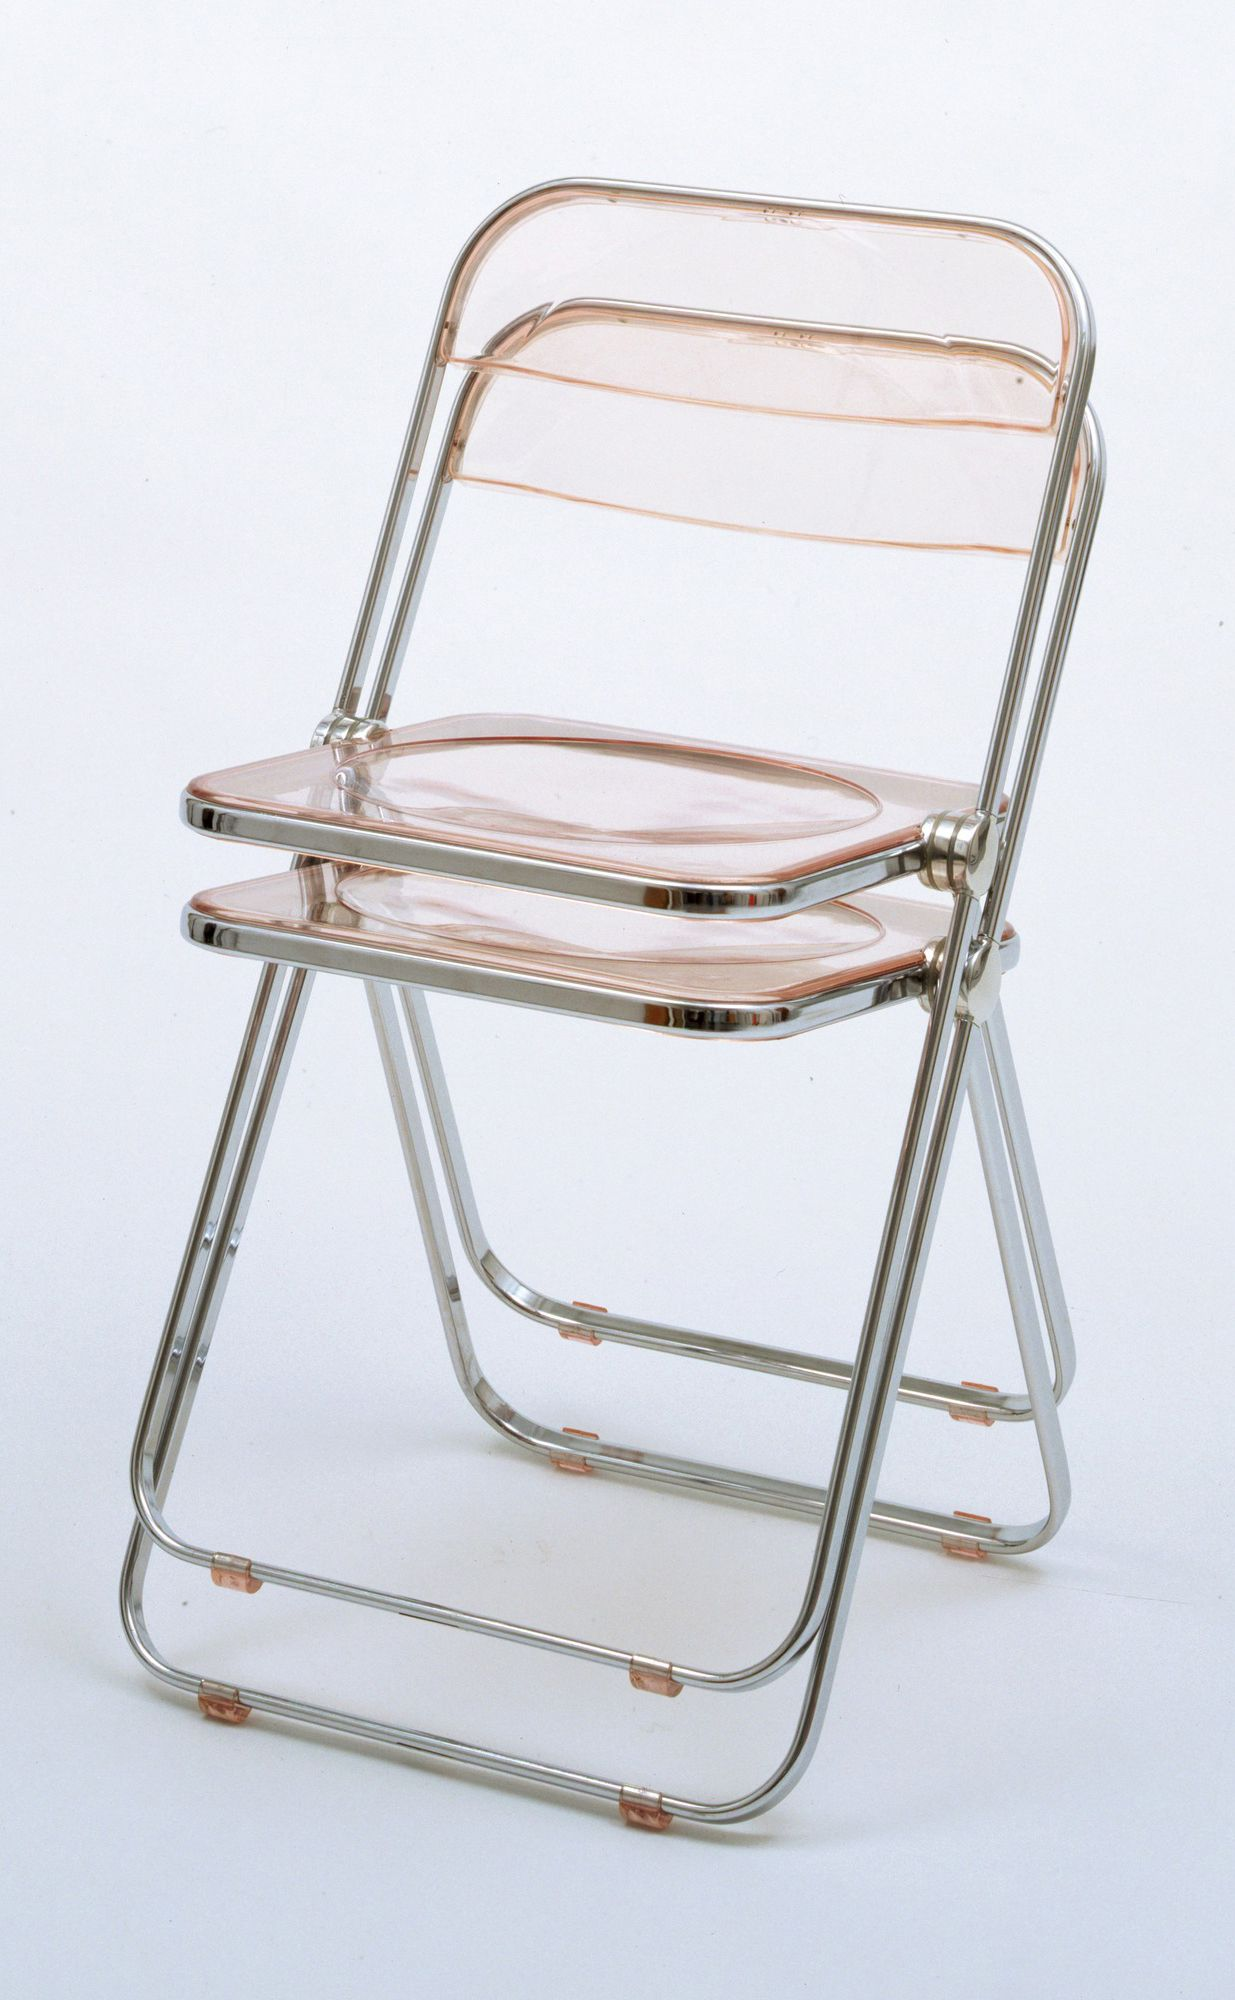 Plia Folding and Stacking Chair